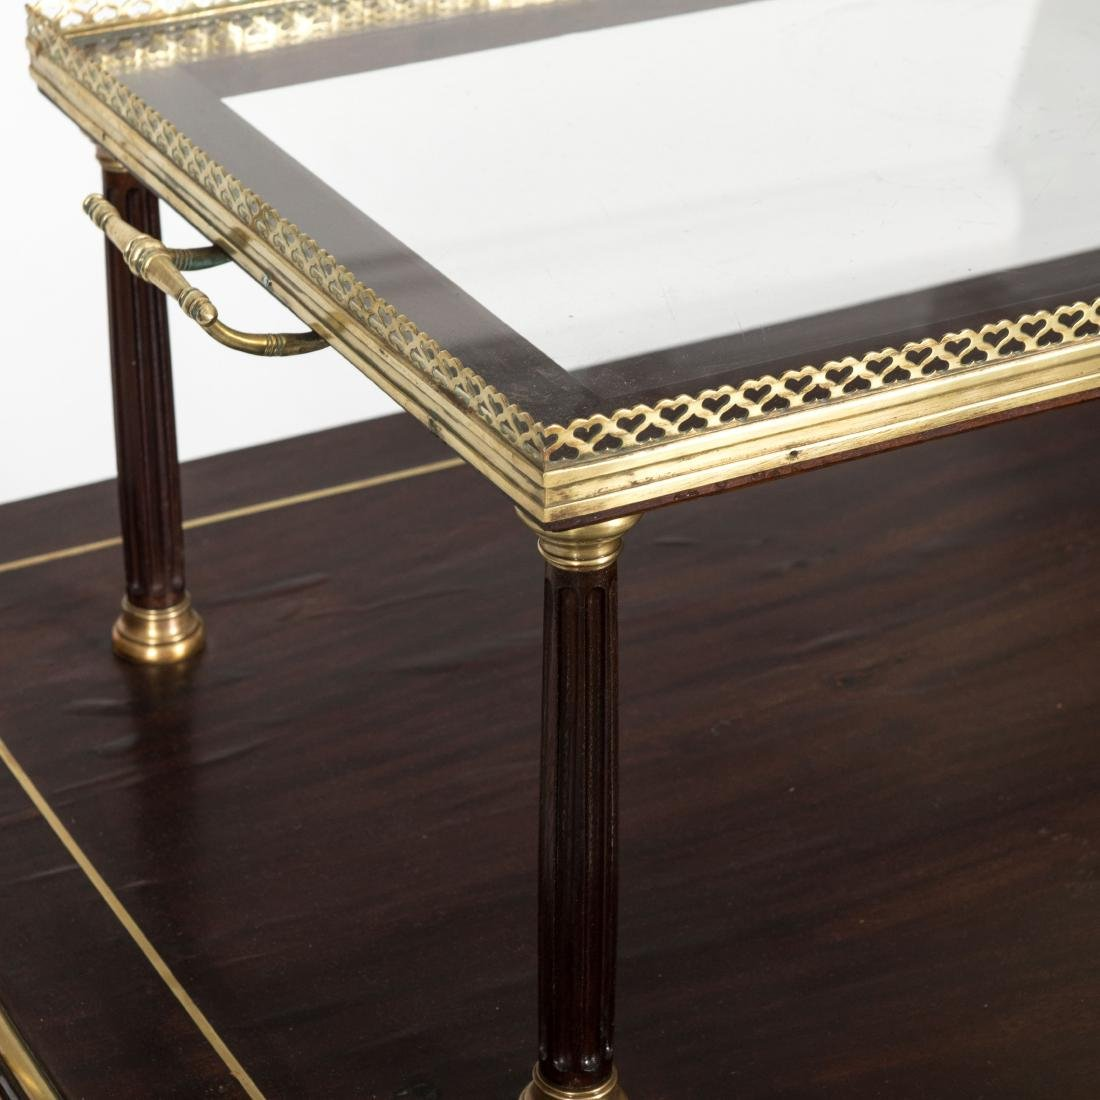 Two Tier French Server with Brass Trim - 4